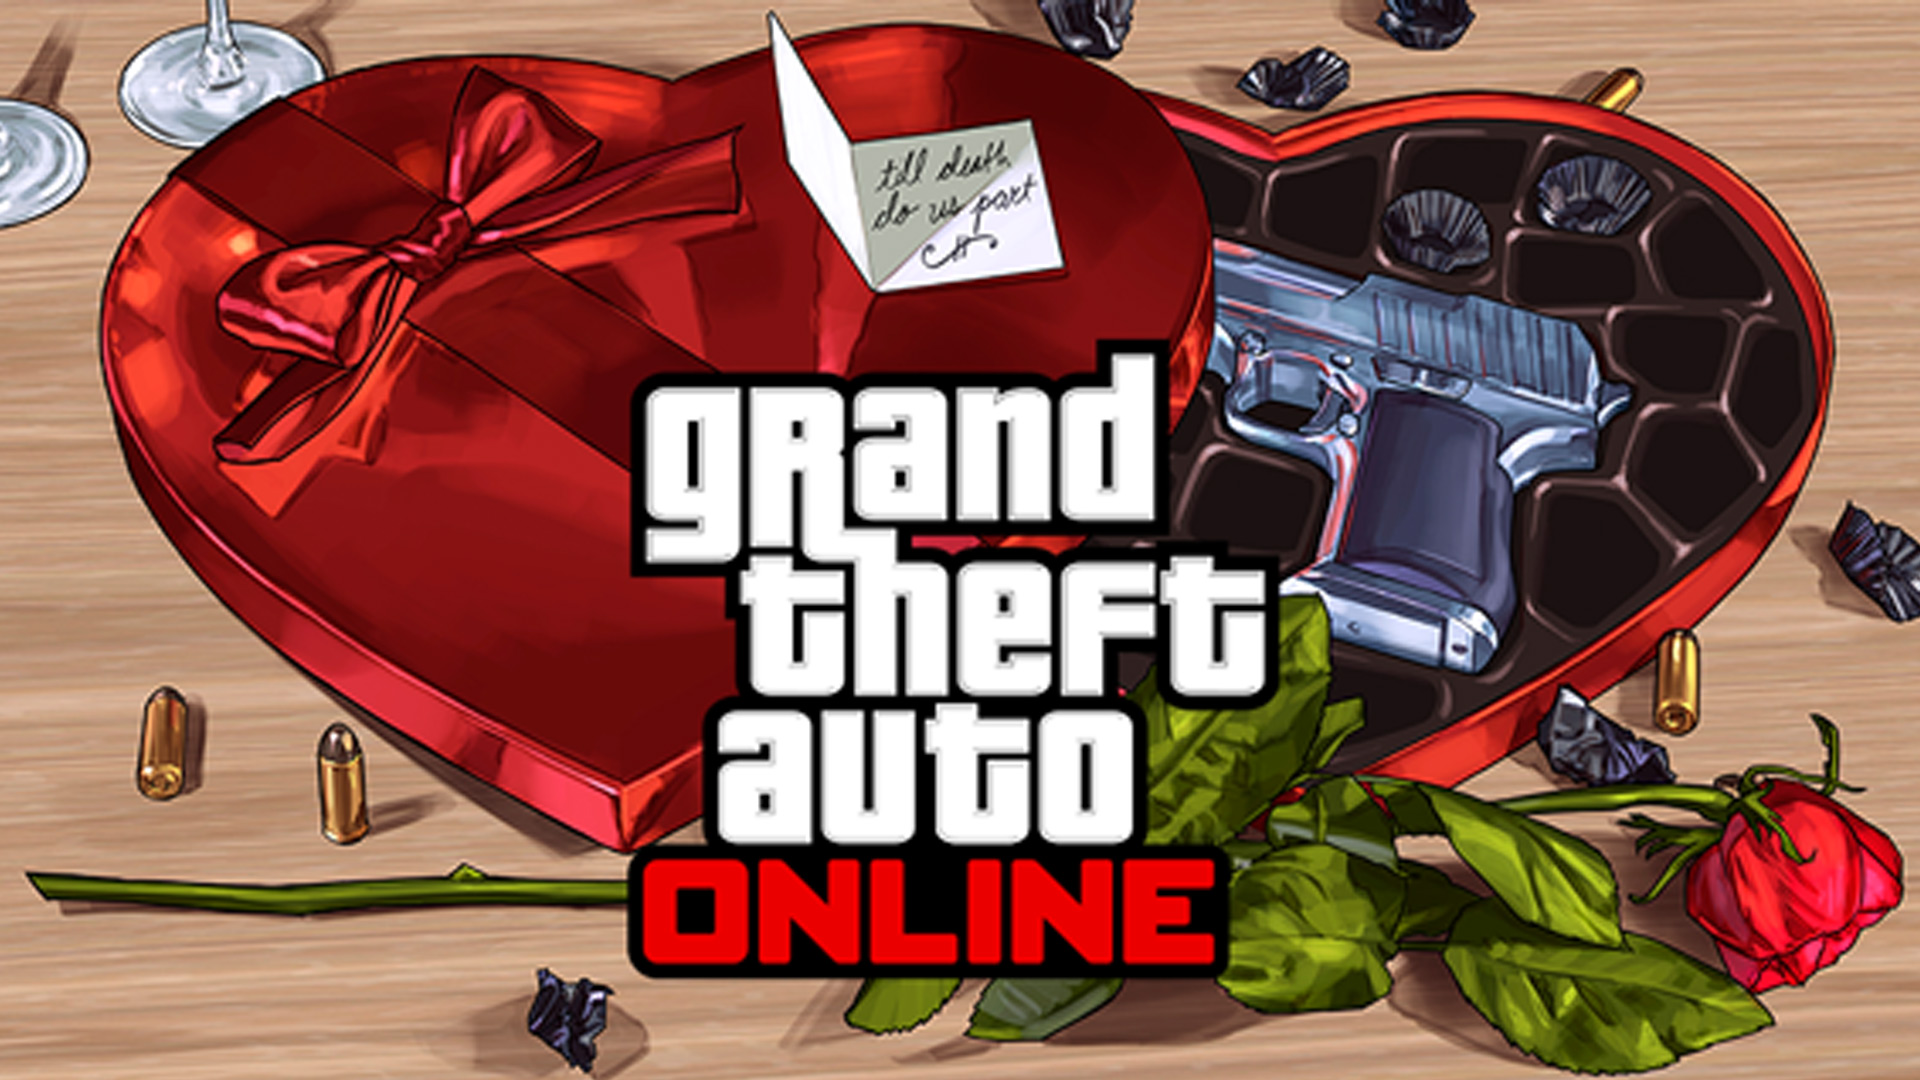 Grand Theft Auto V Online Be my Valentine